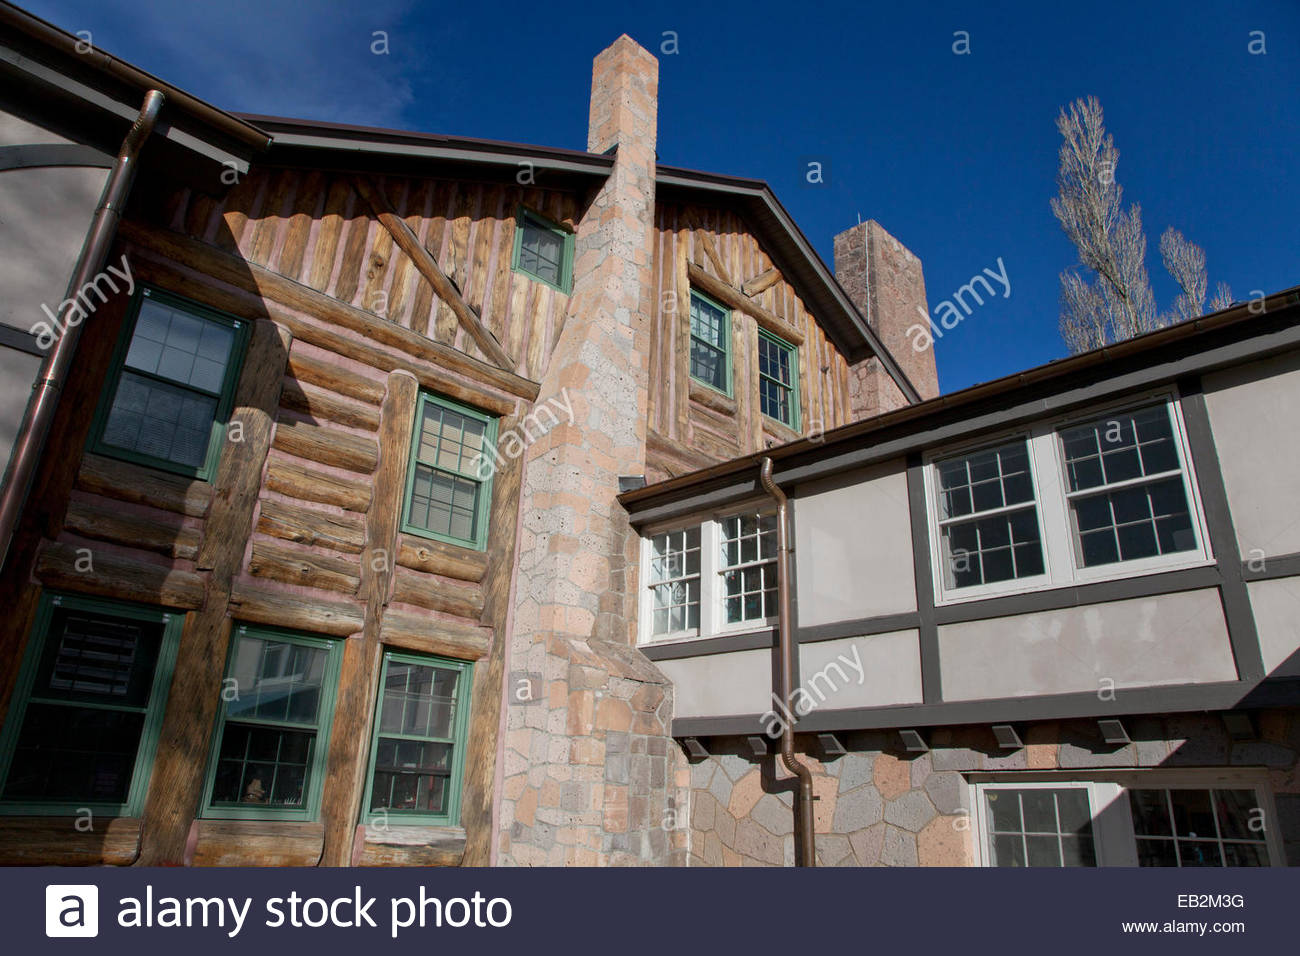 The historic Fuller Lodge, built in 1928 as a dining hall and masters' quarters, it was designed by John Gaw - Stock Image